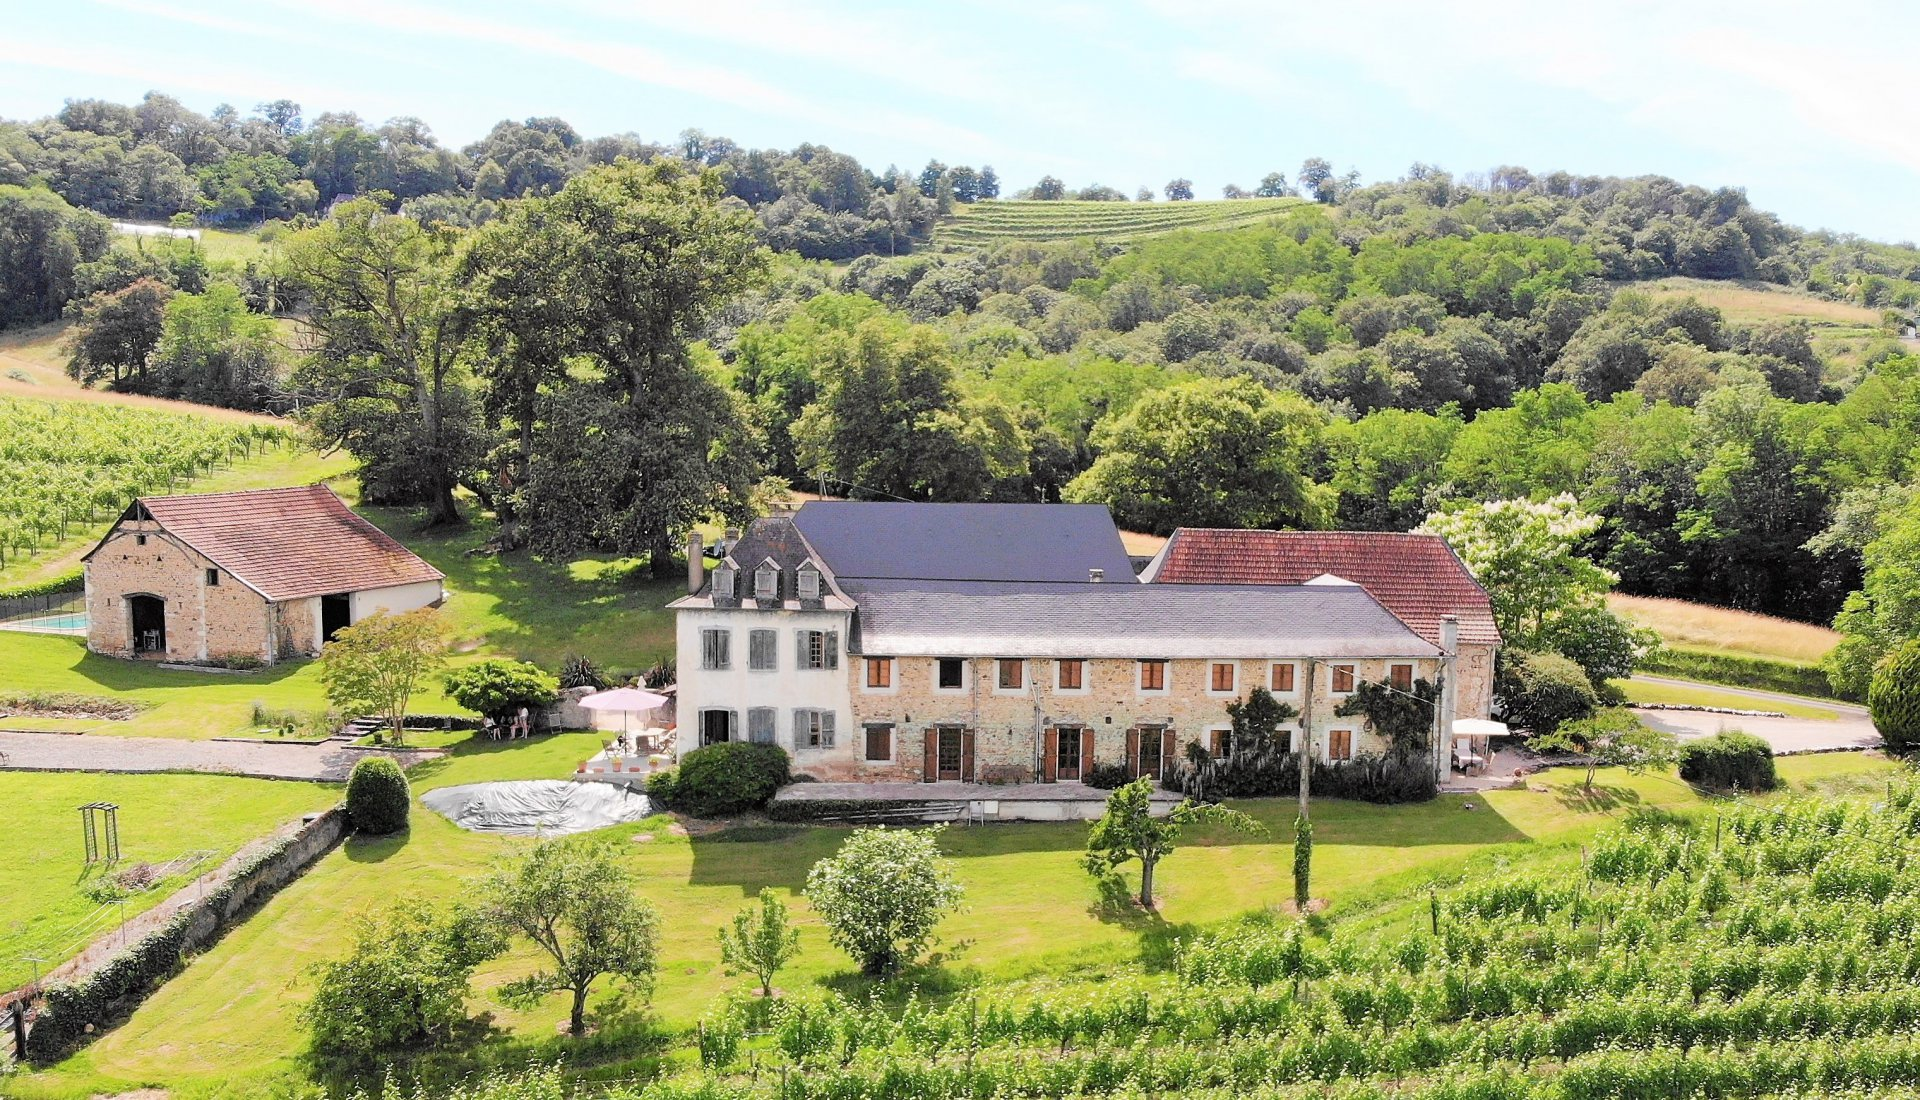 Near PAU - Beautifully restored 18th century farmhouse with luxury gite